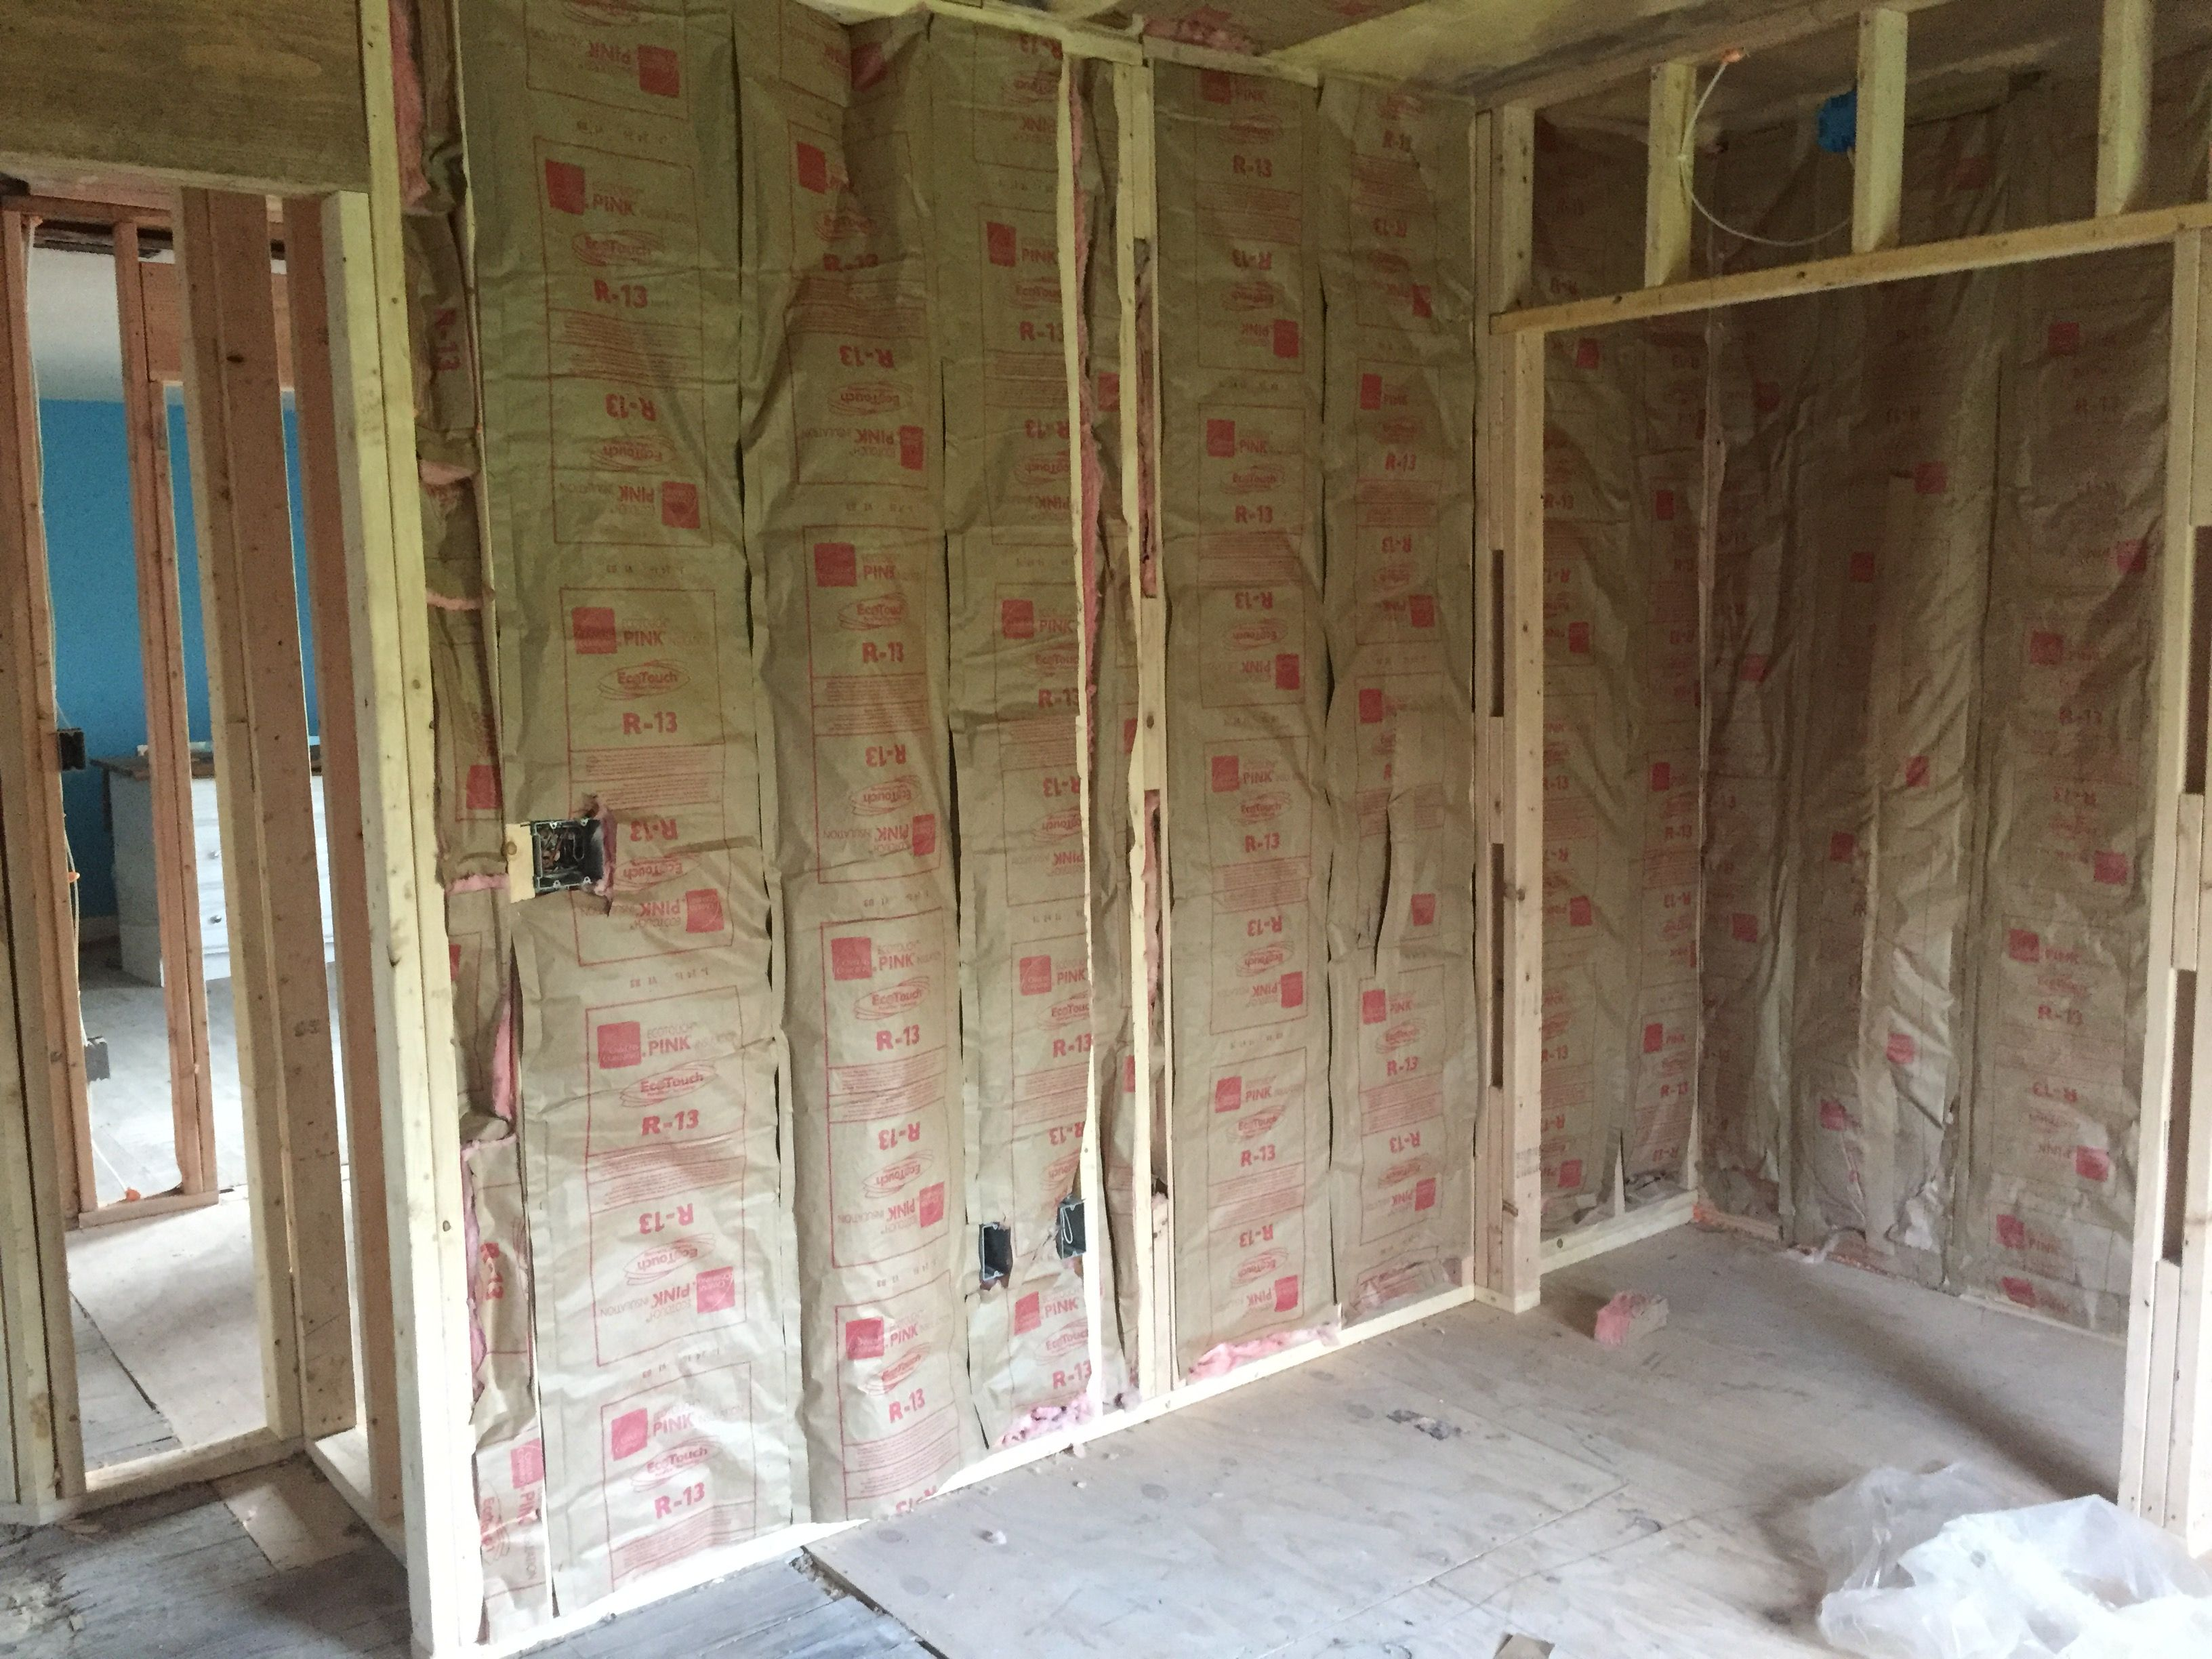 Insulating The Wall At The Shower For Sounding Bedroom 3 Decor Home Decor Room Divider